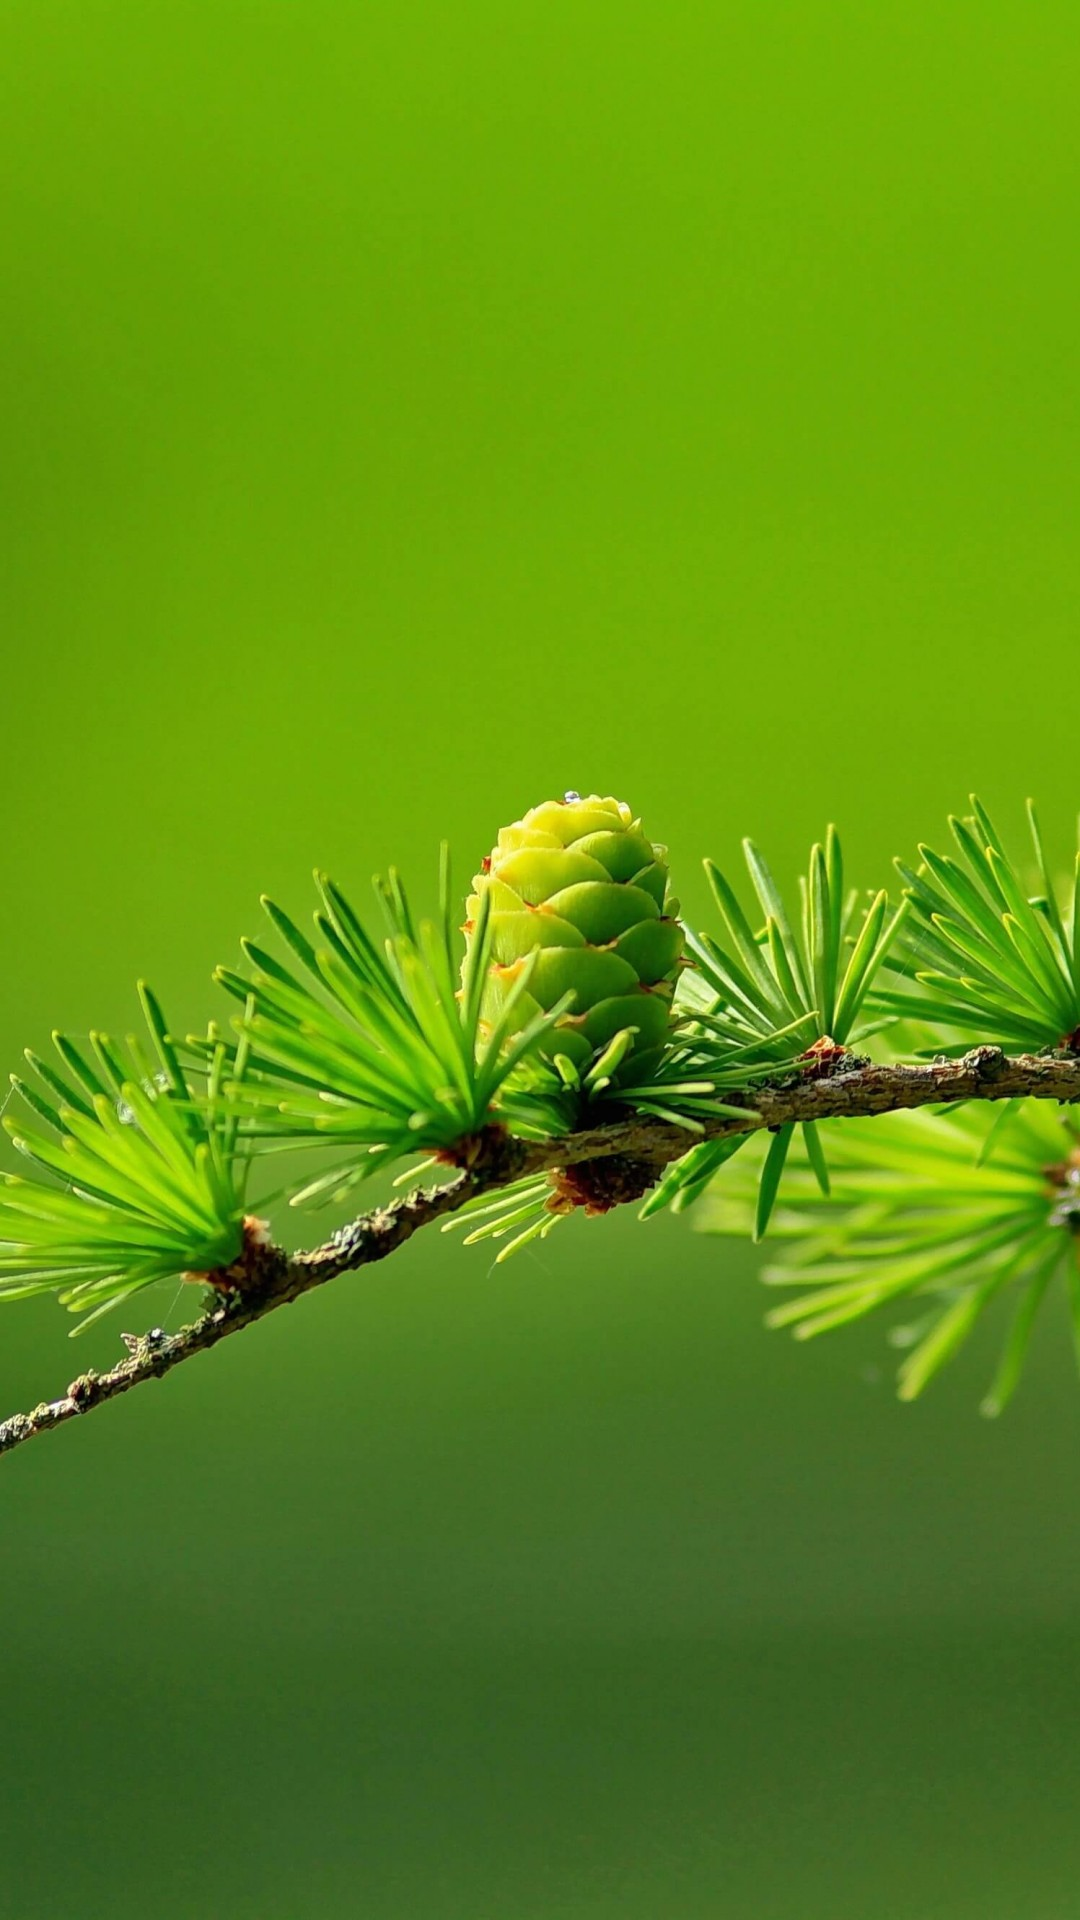 Branch of Pine Tree Wallpaper for SAMSUNG Galaxy S4